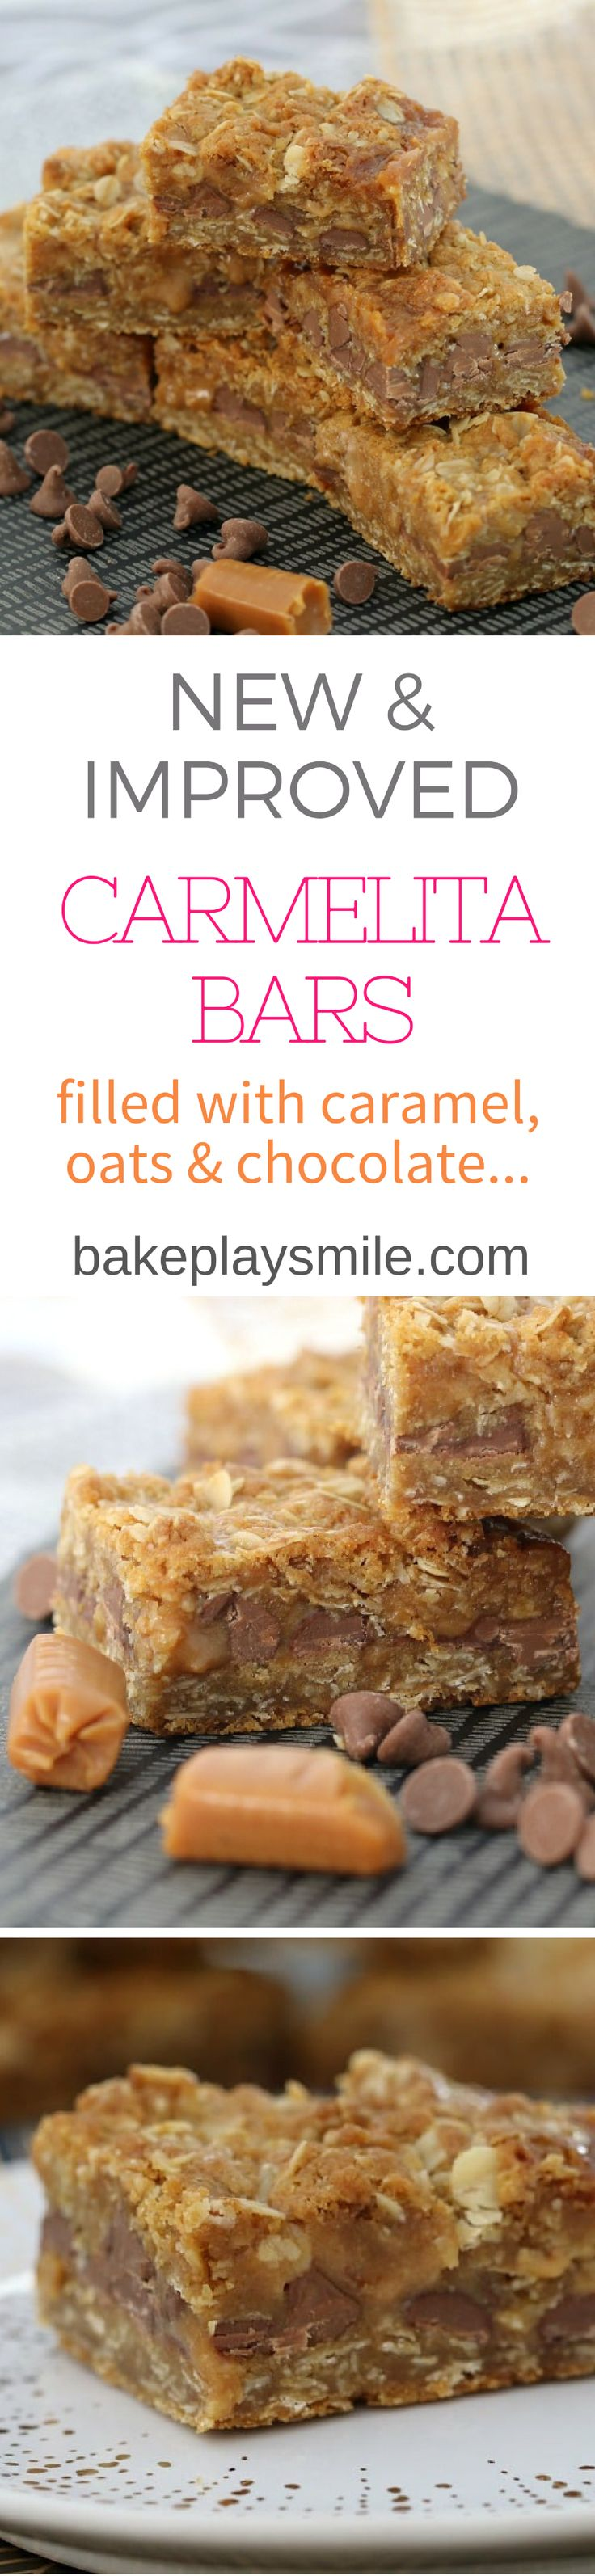 These new & improved Carmelitas are made with the most mouth-watering combination of oats, caramel and chocolate. Totally and utterly irresistible! #carmelitas #recipe #easy #caramel #slice #chocolate #oat #best #thermomix #conventional